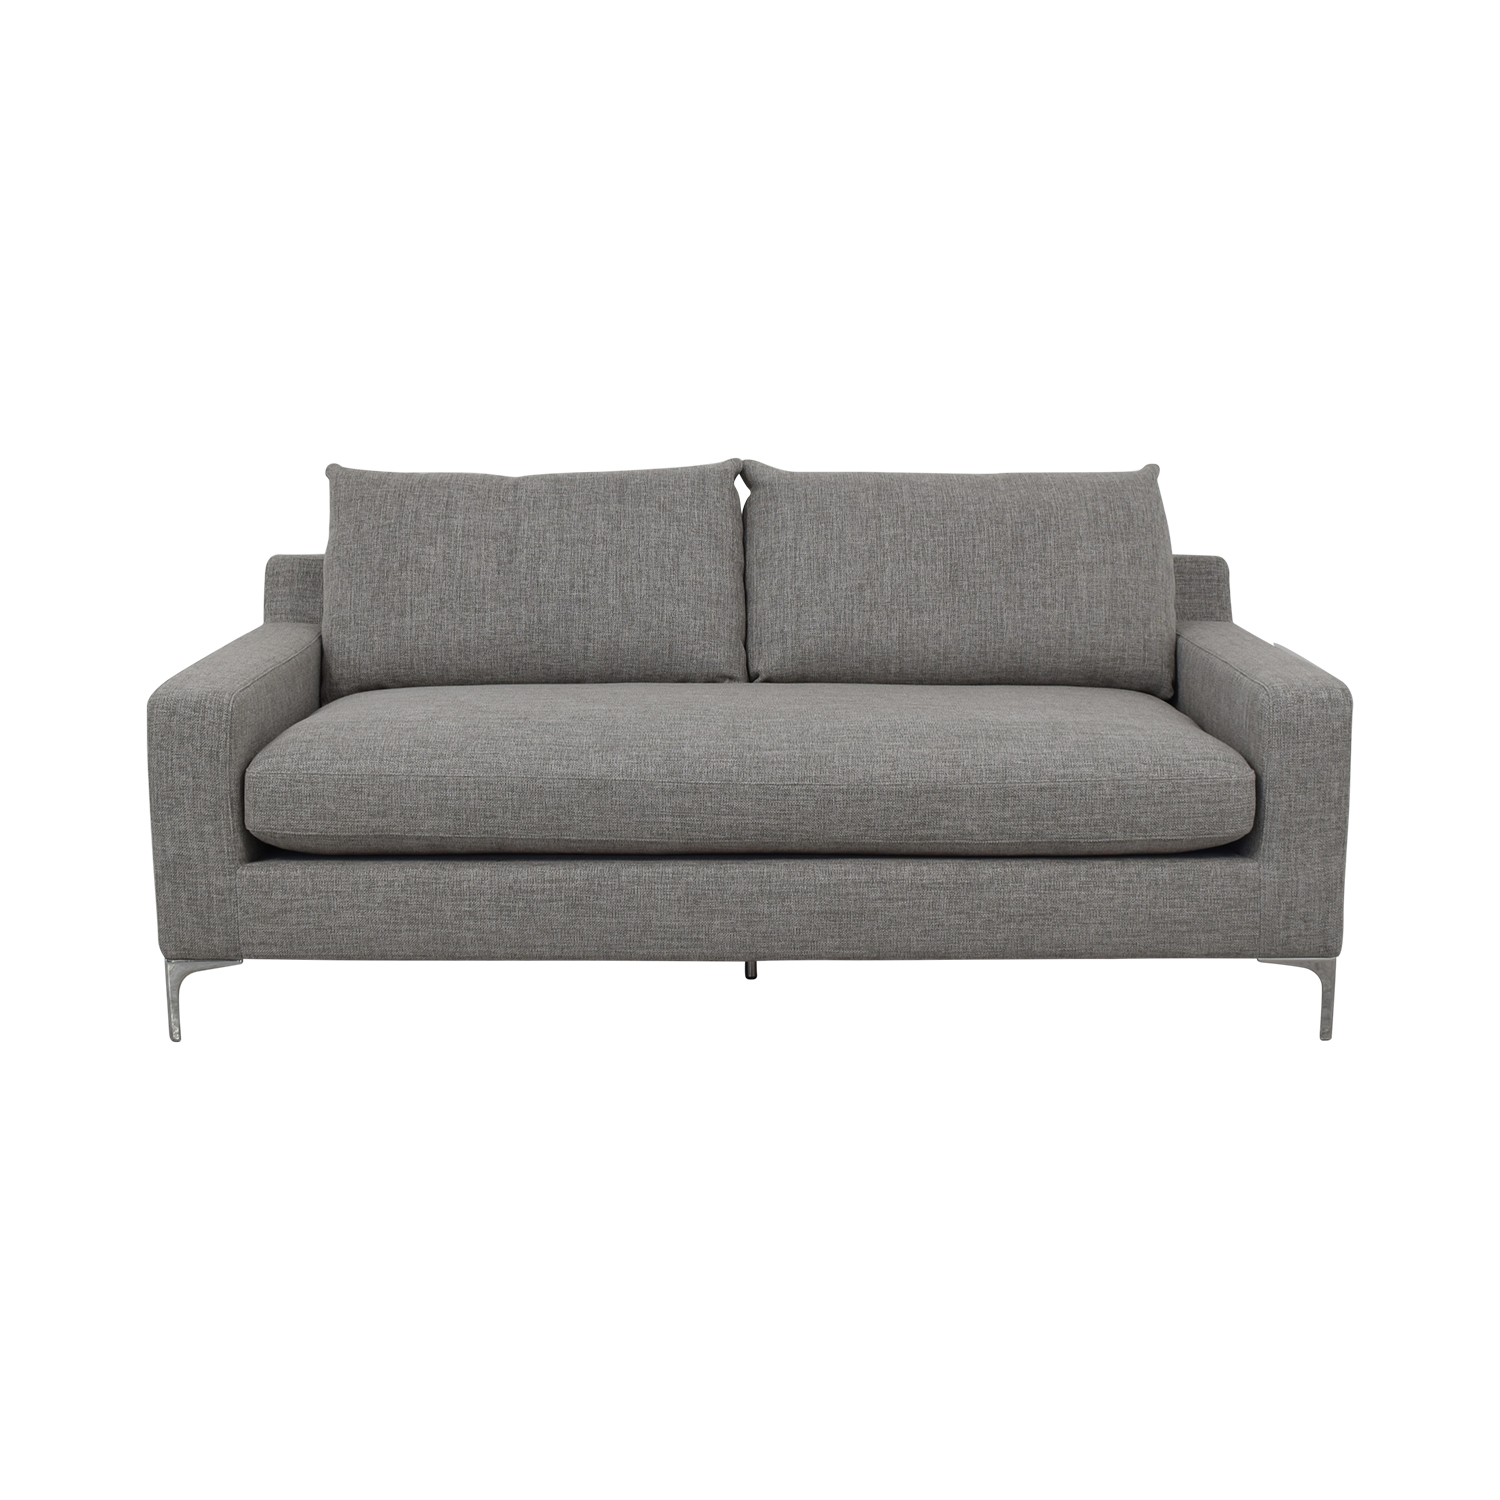 Interior Define Sloan Single Cushion Sofa dimensions